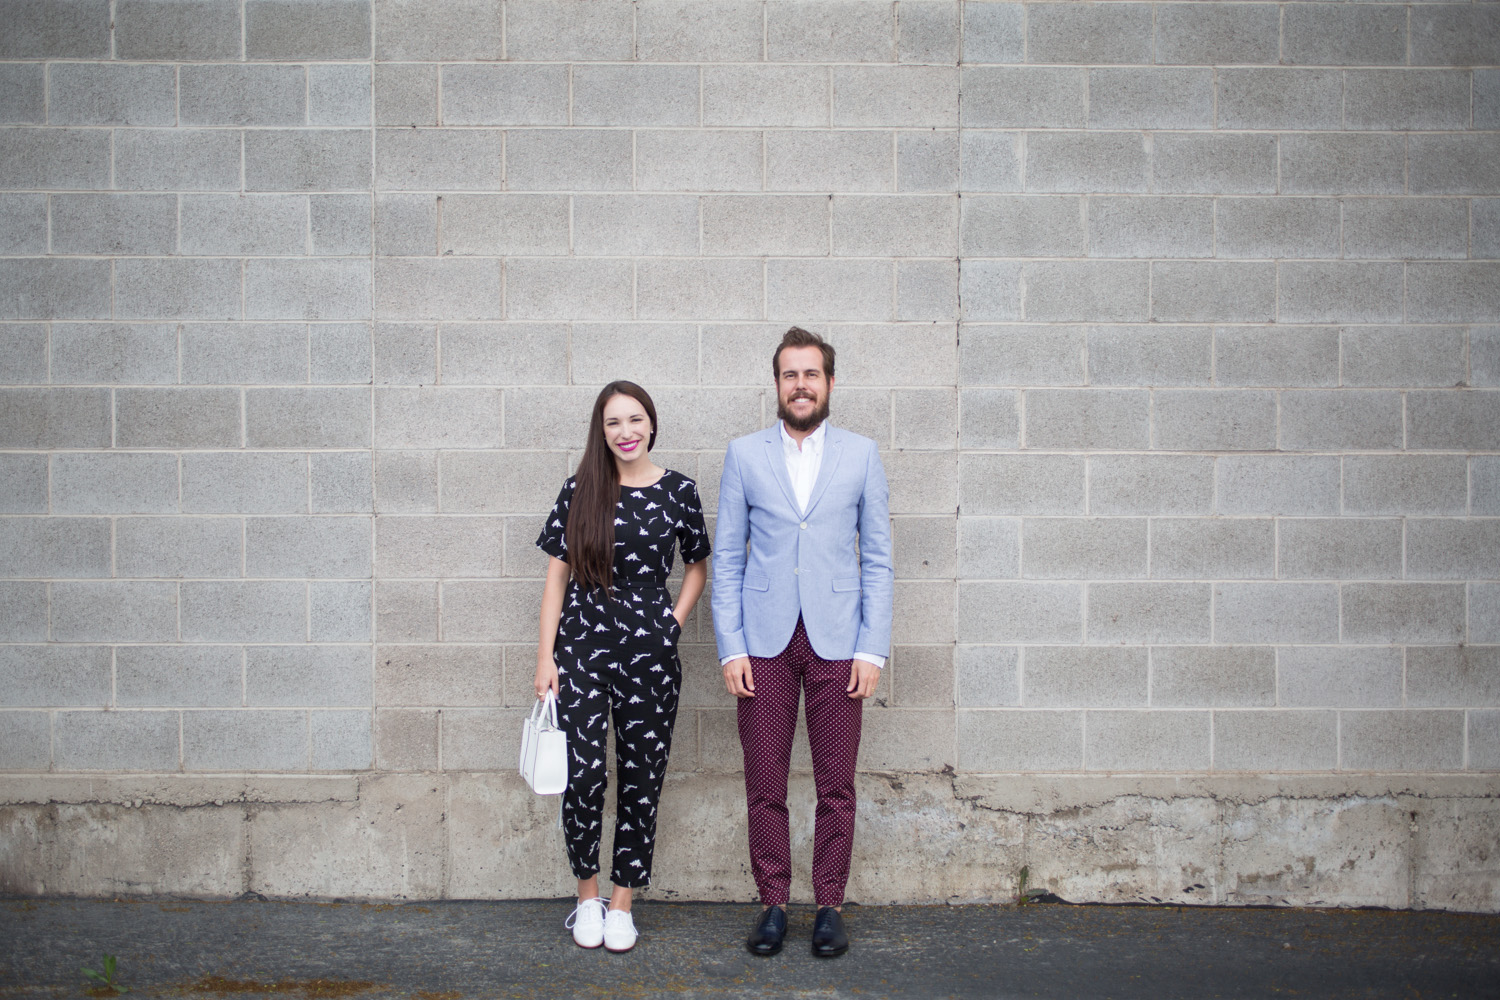 kelseybang.com- a his and her fashion blog